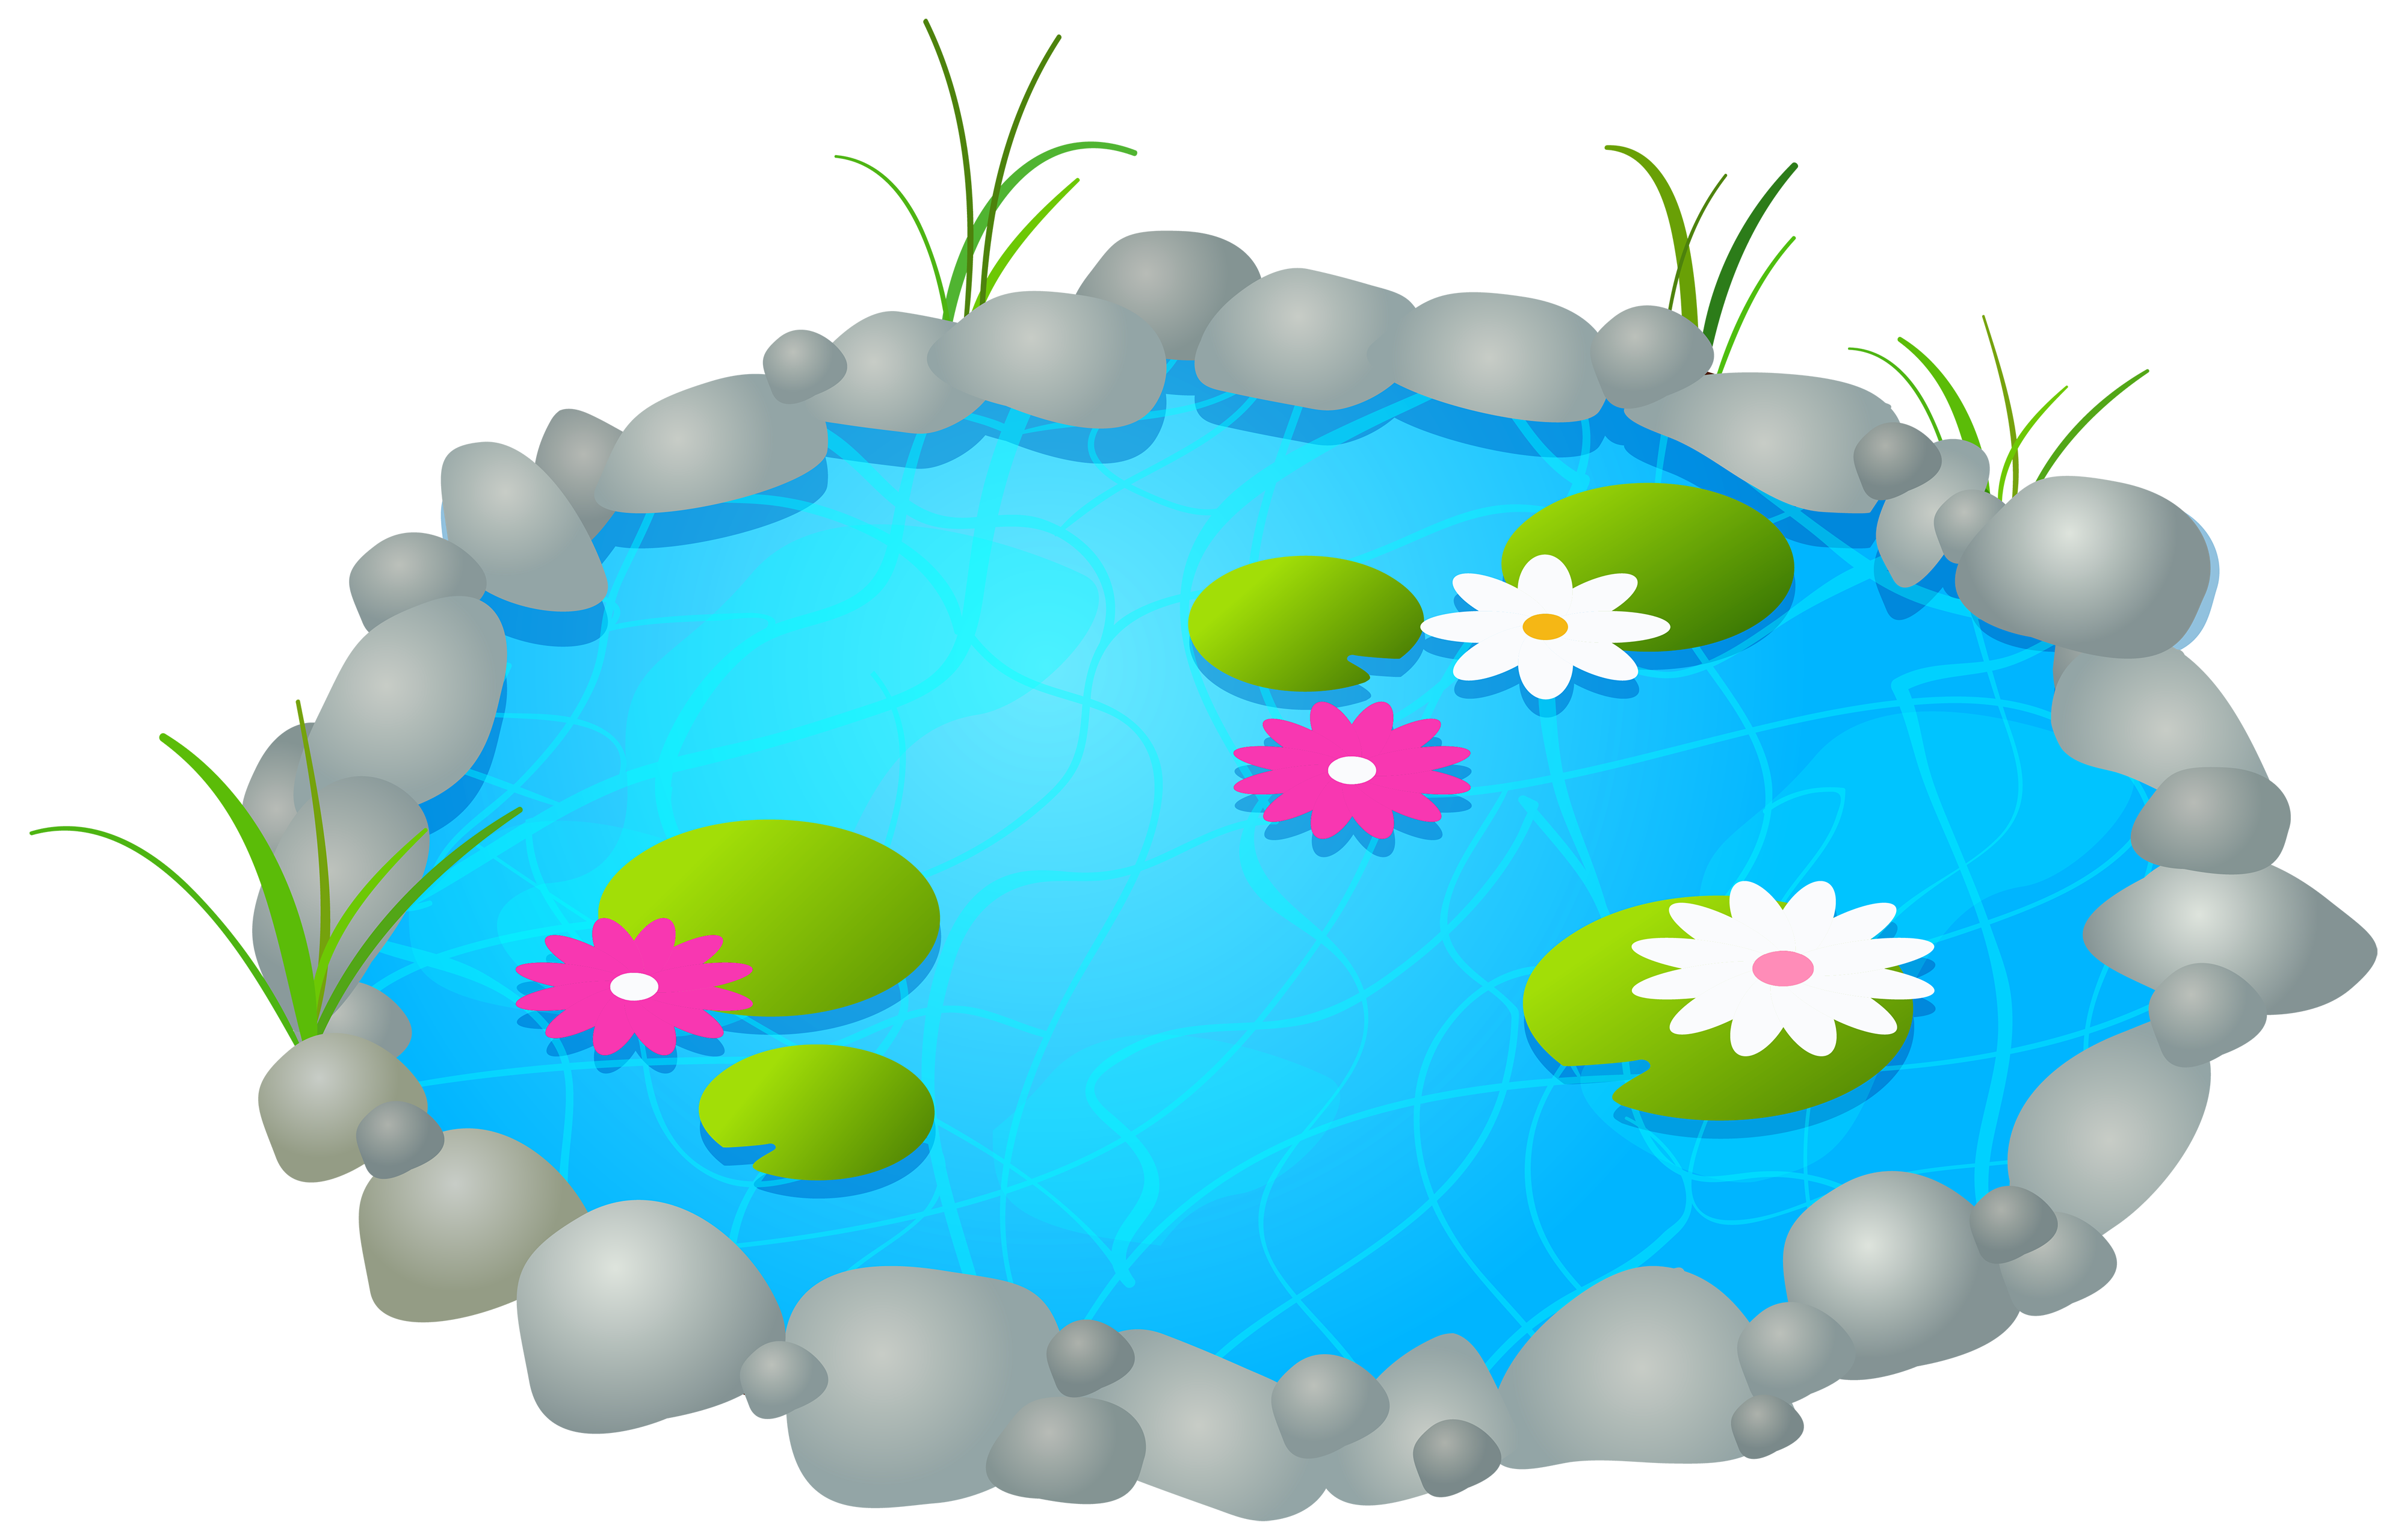 Fountain clipart top view. Garden pond png best